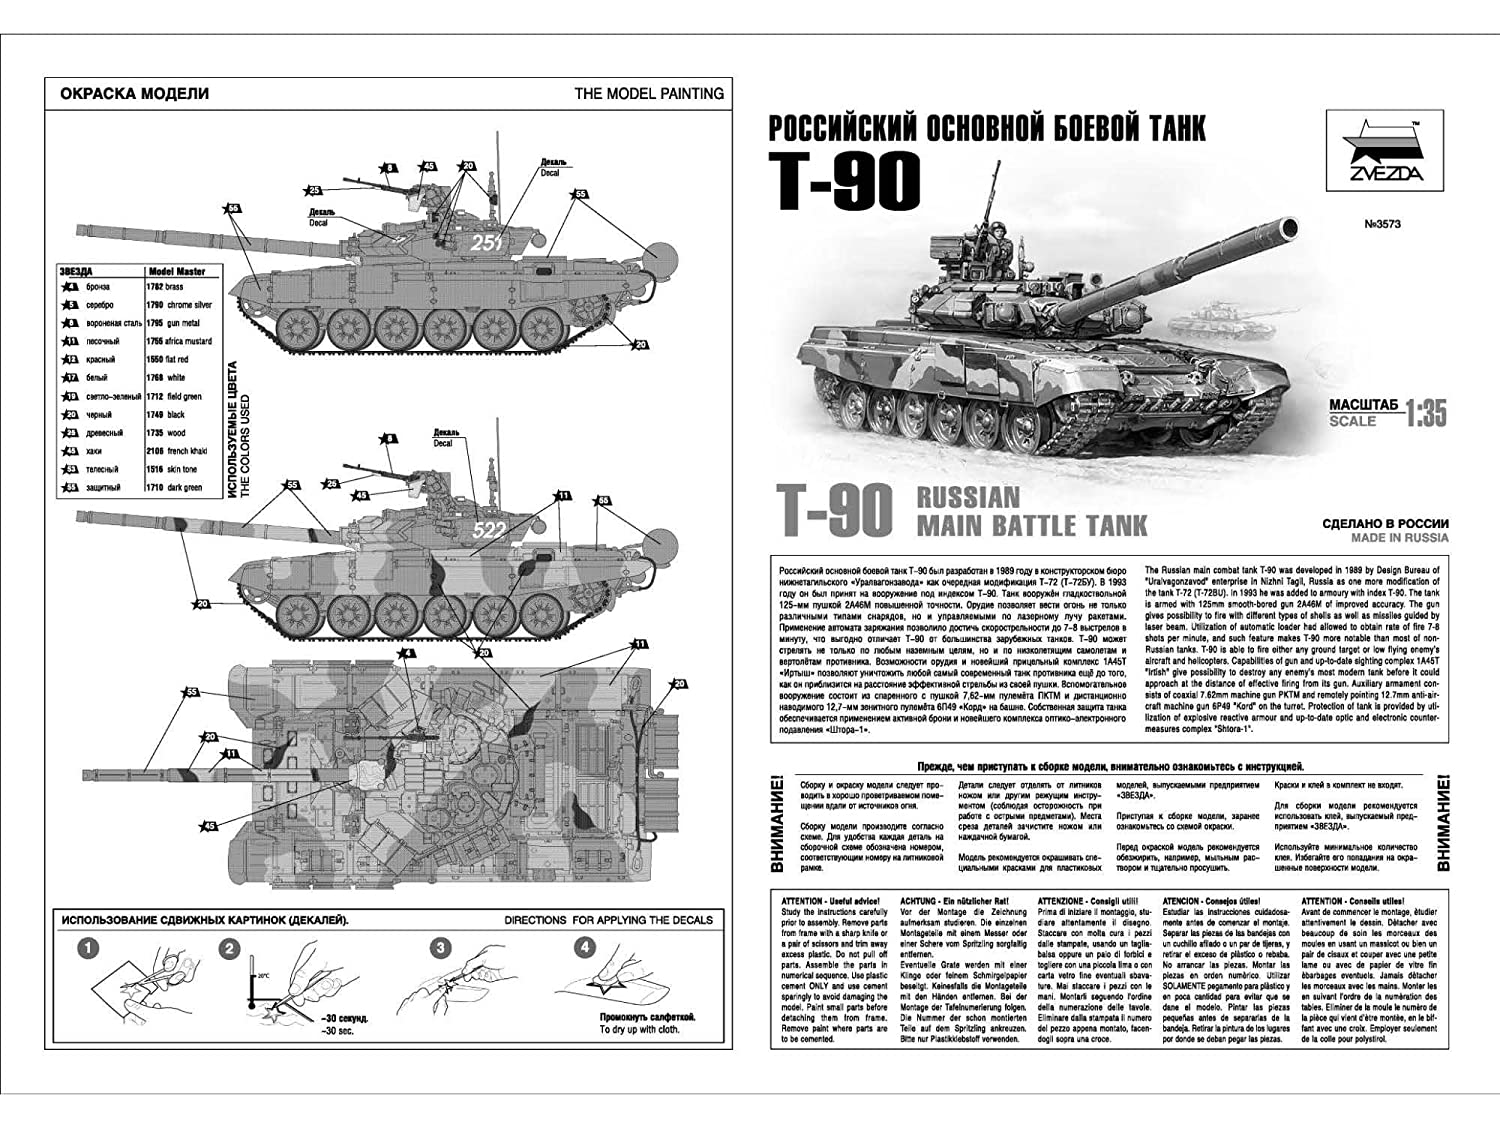 Amazon.com: Zvezda Model Russian Main Battle Tank T-90 Scale 1/35 (3573): Toys & Games